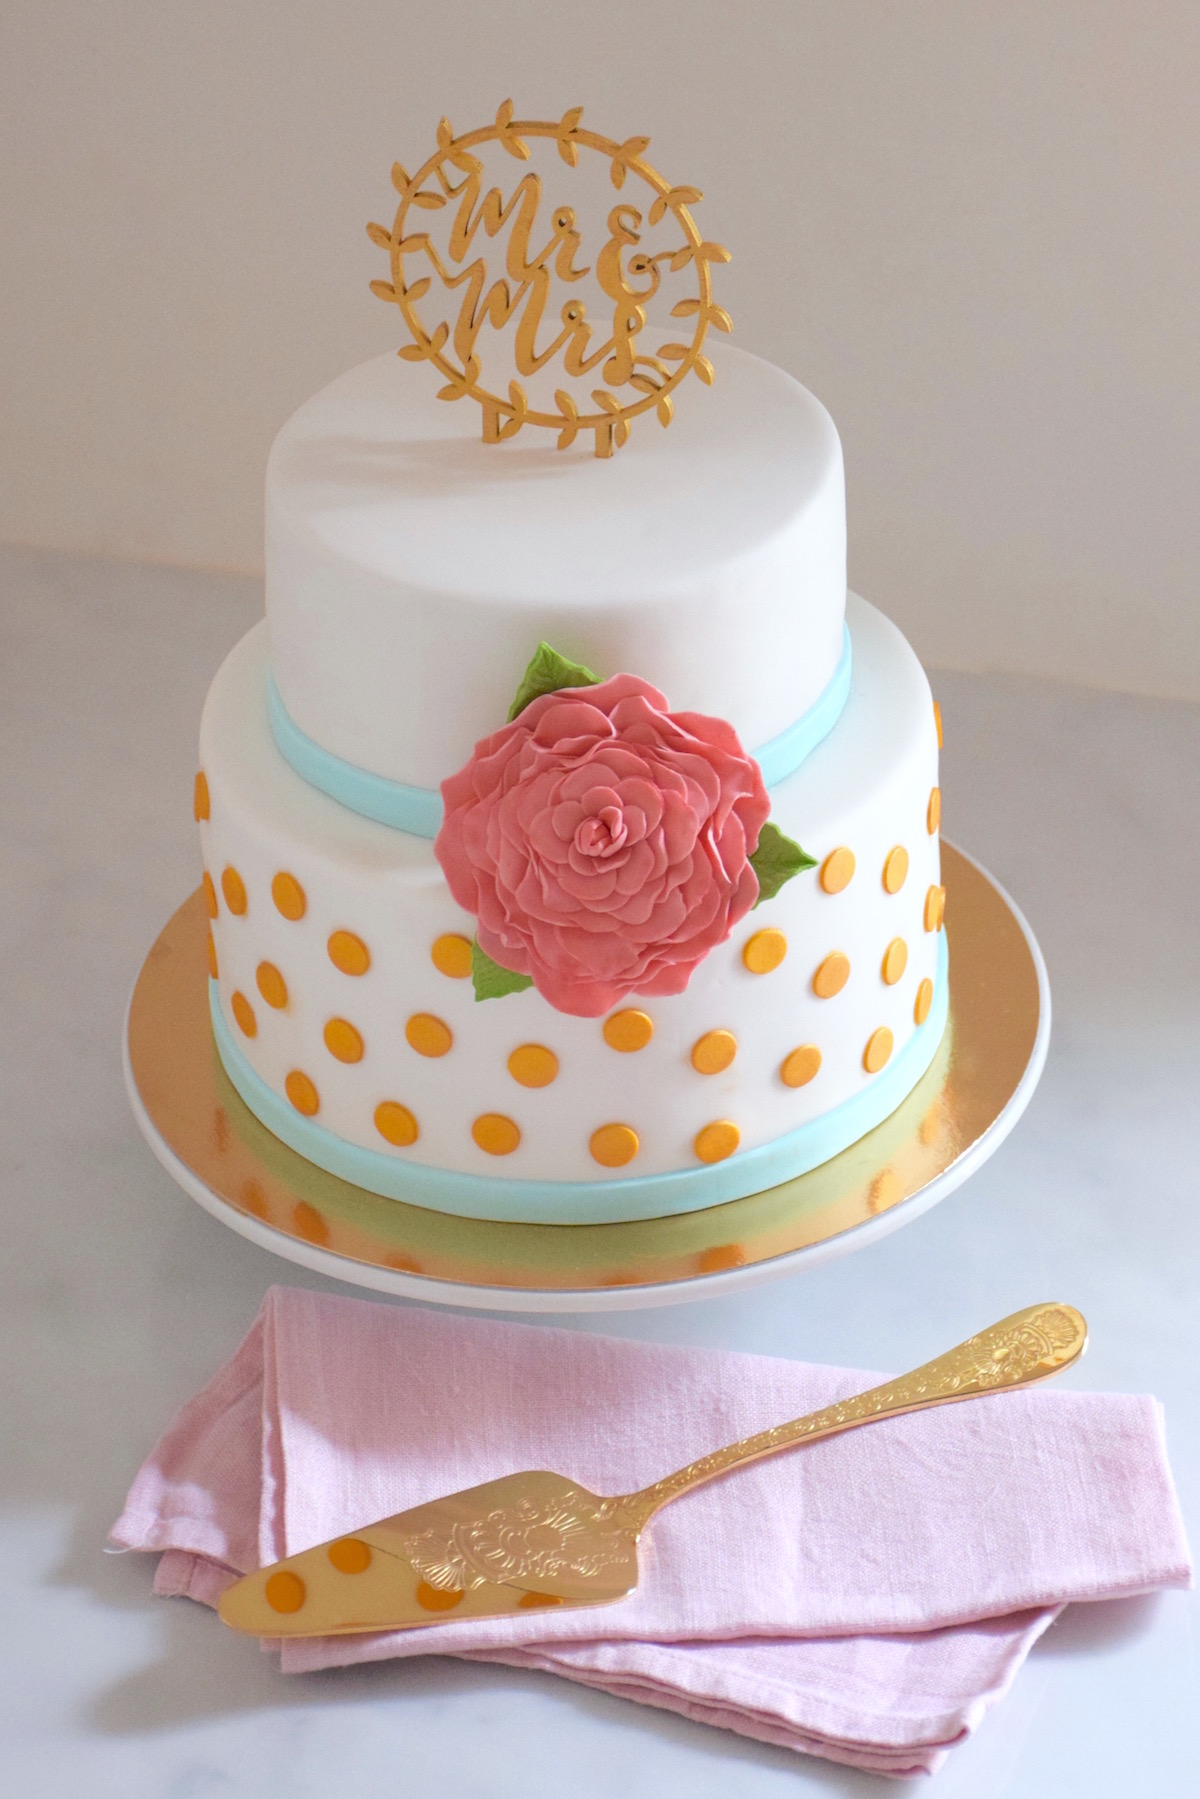 Gold dots & pink rose wedding cake